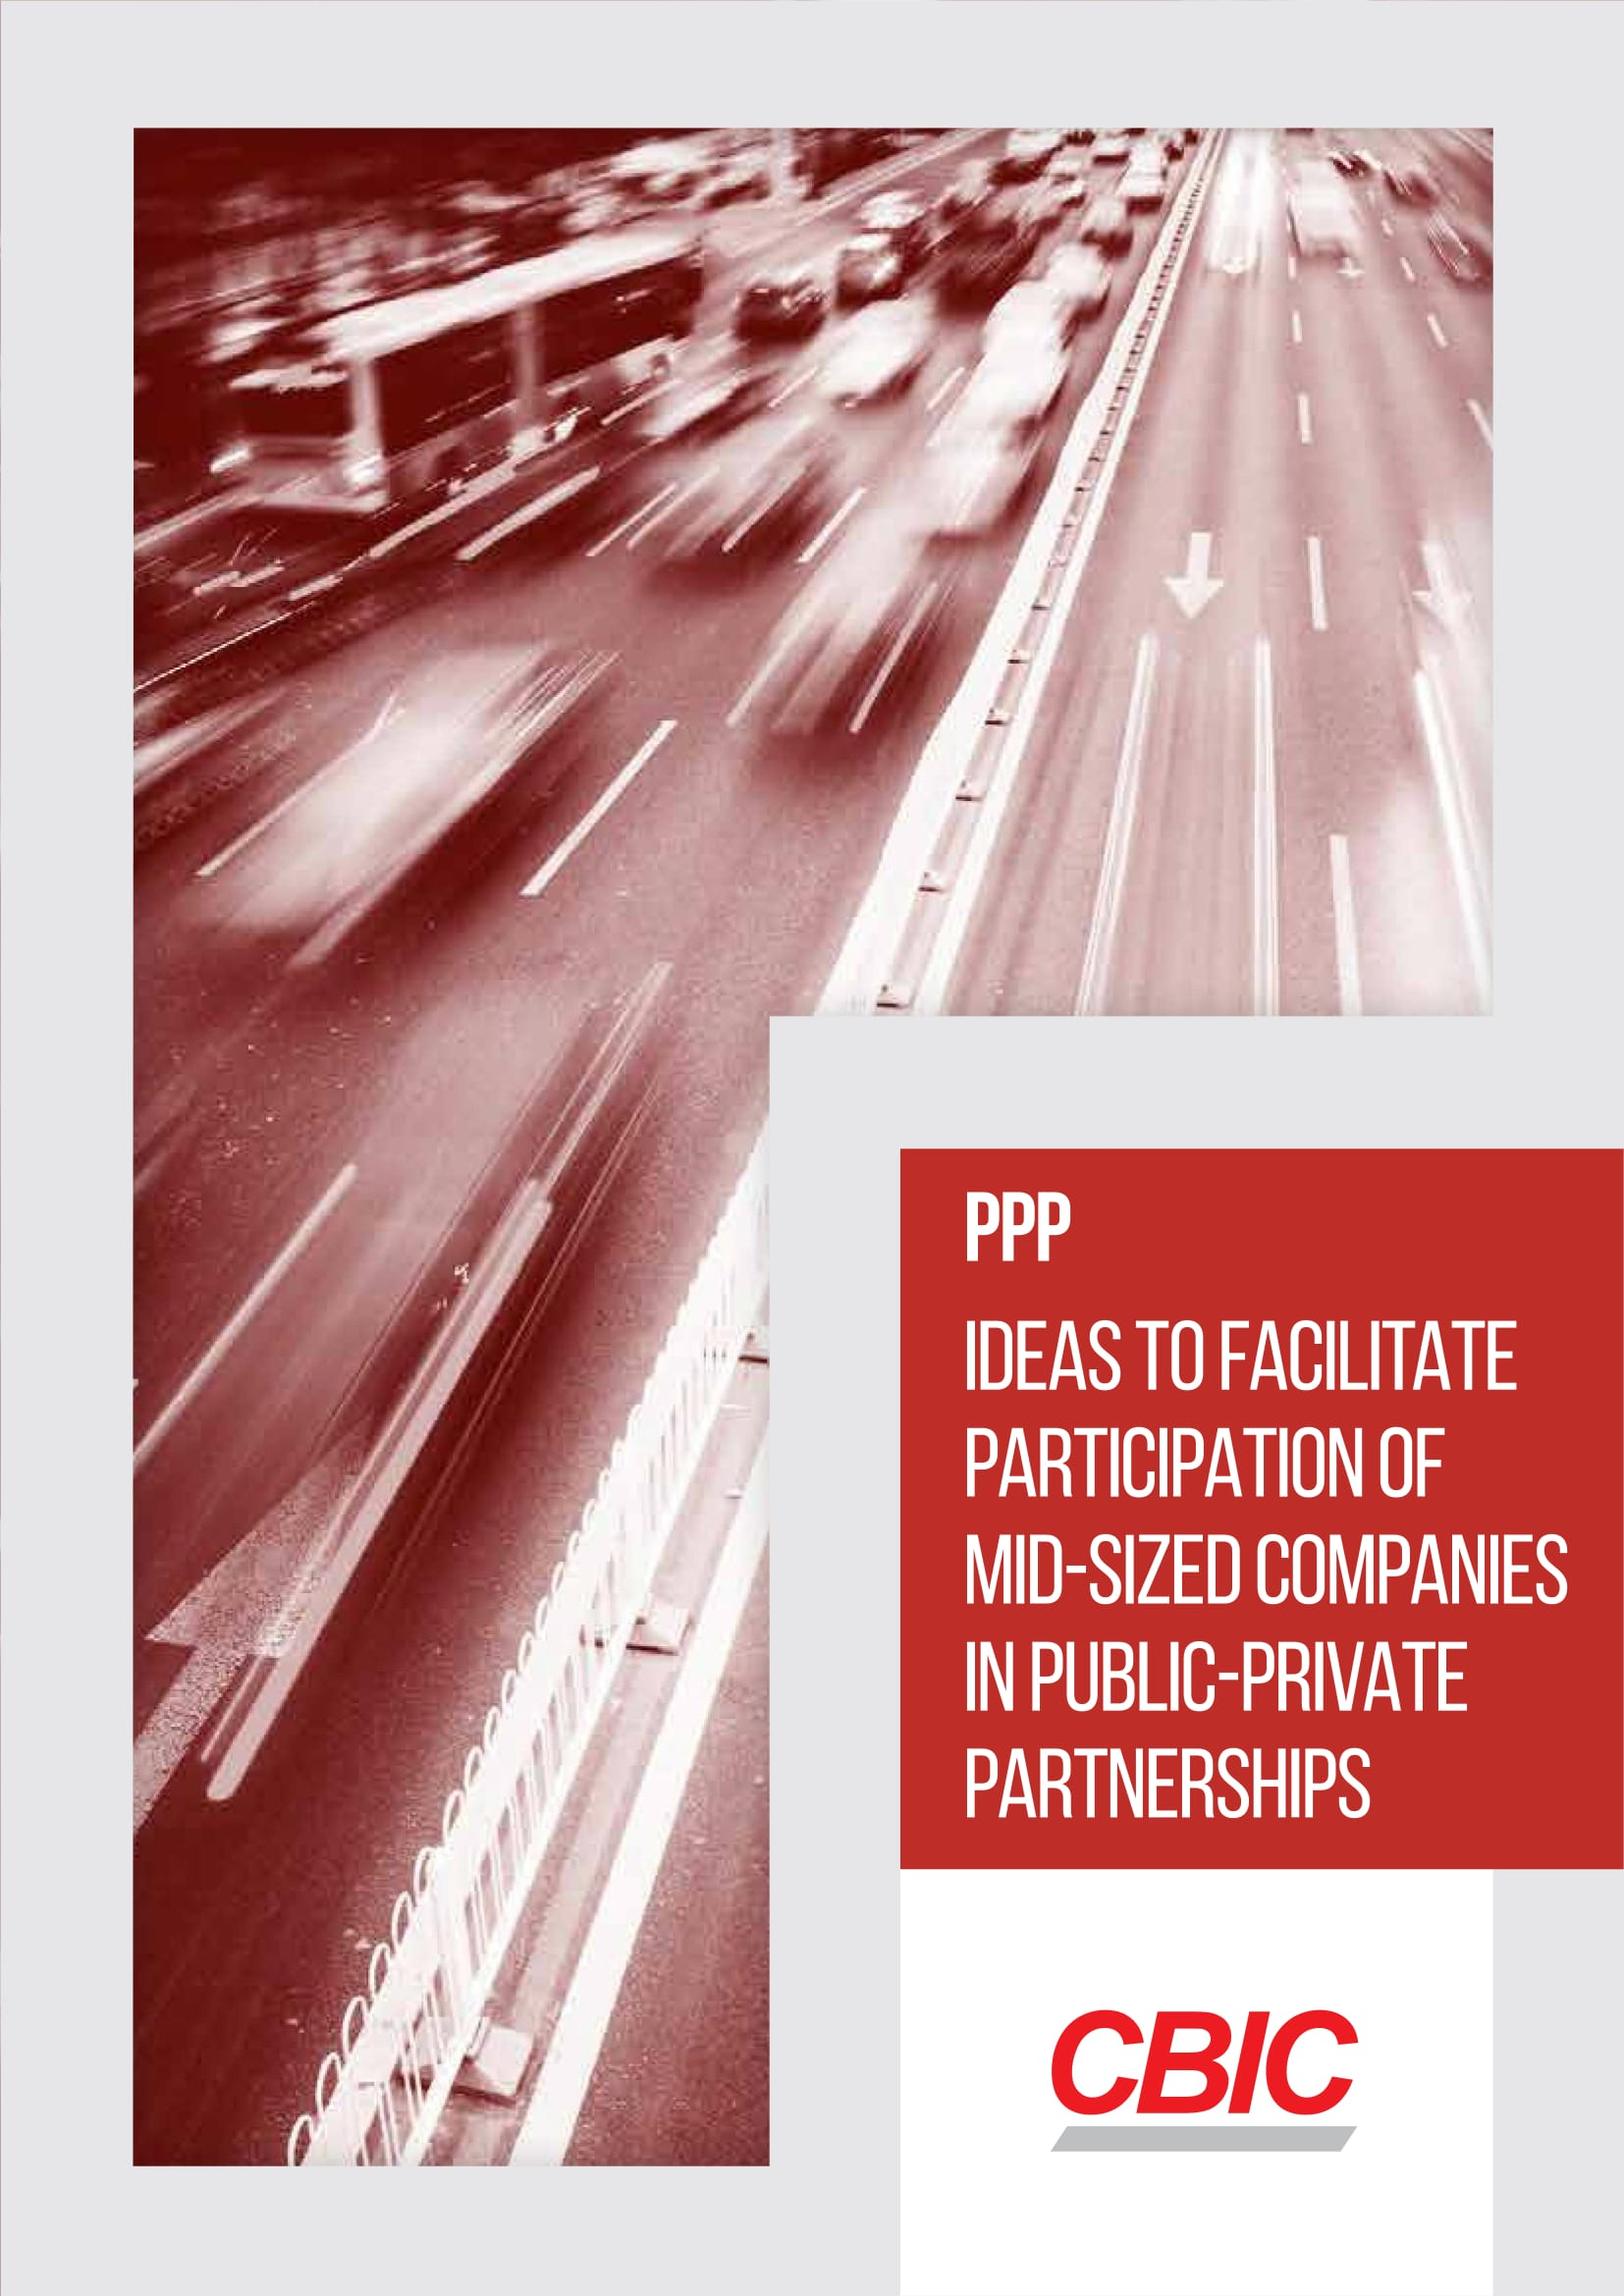 PPP IDEAS TO FACILITATE PARTICIPATION OF MID-SIZED COMPANIES